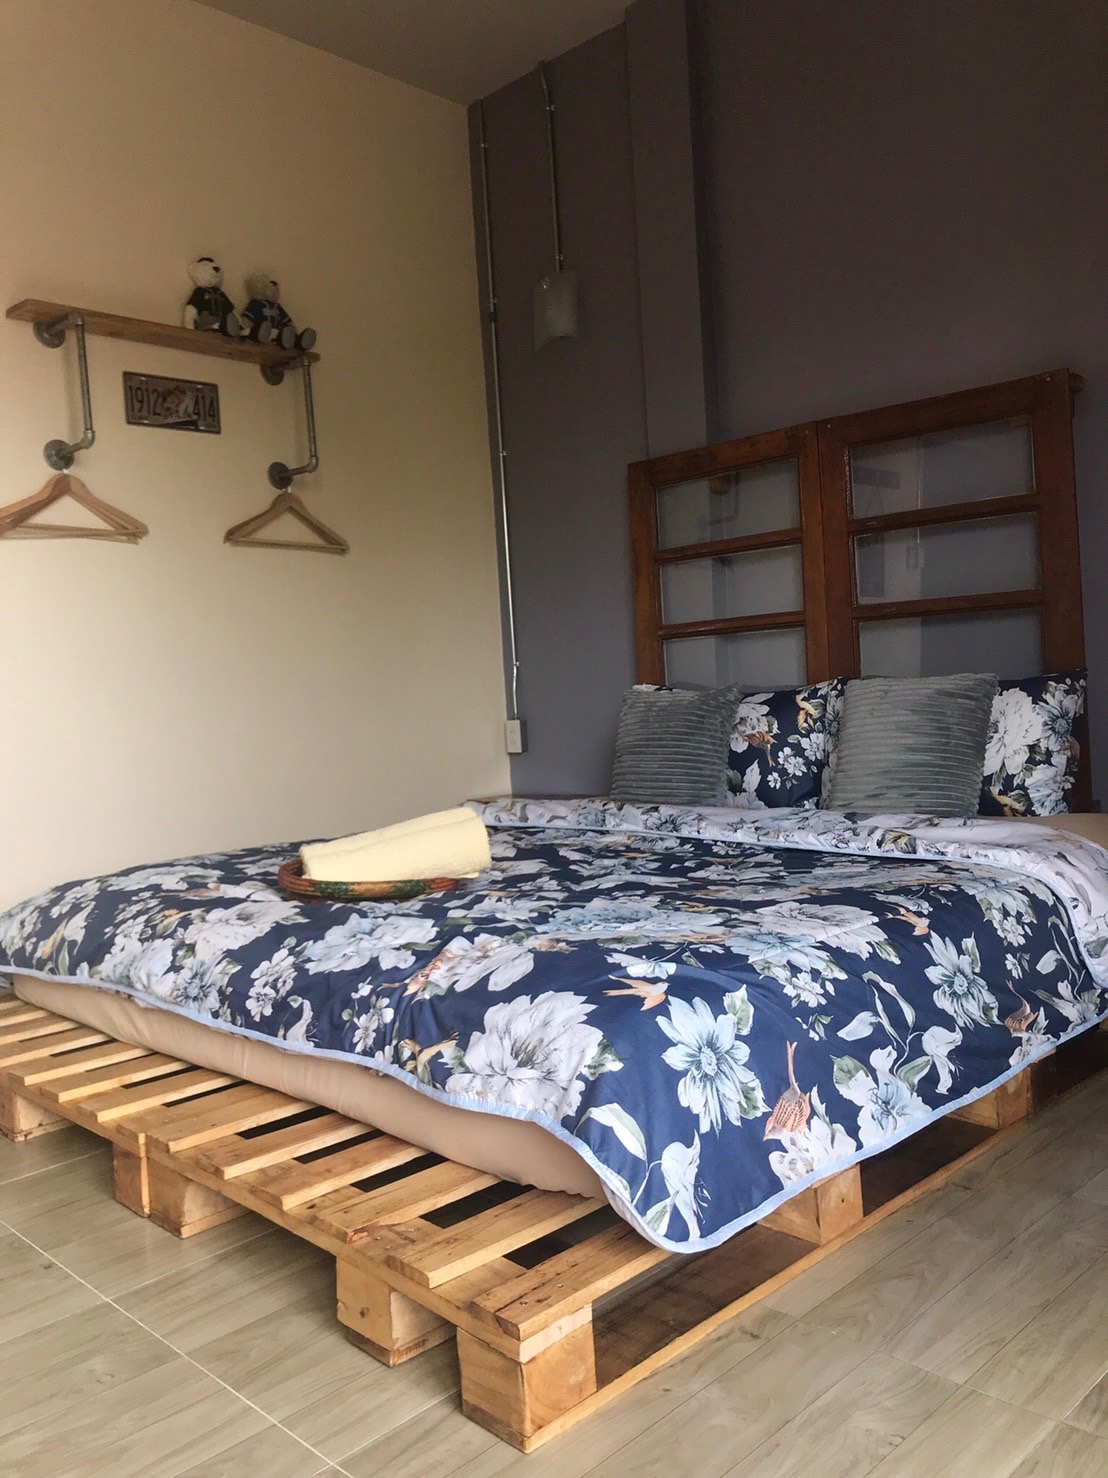 Funky (but comfy!) bed in bedroom upstairs